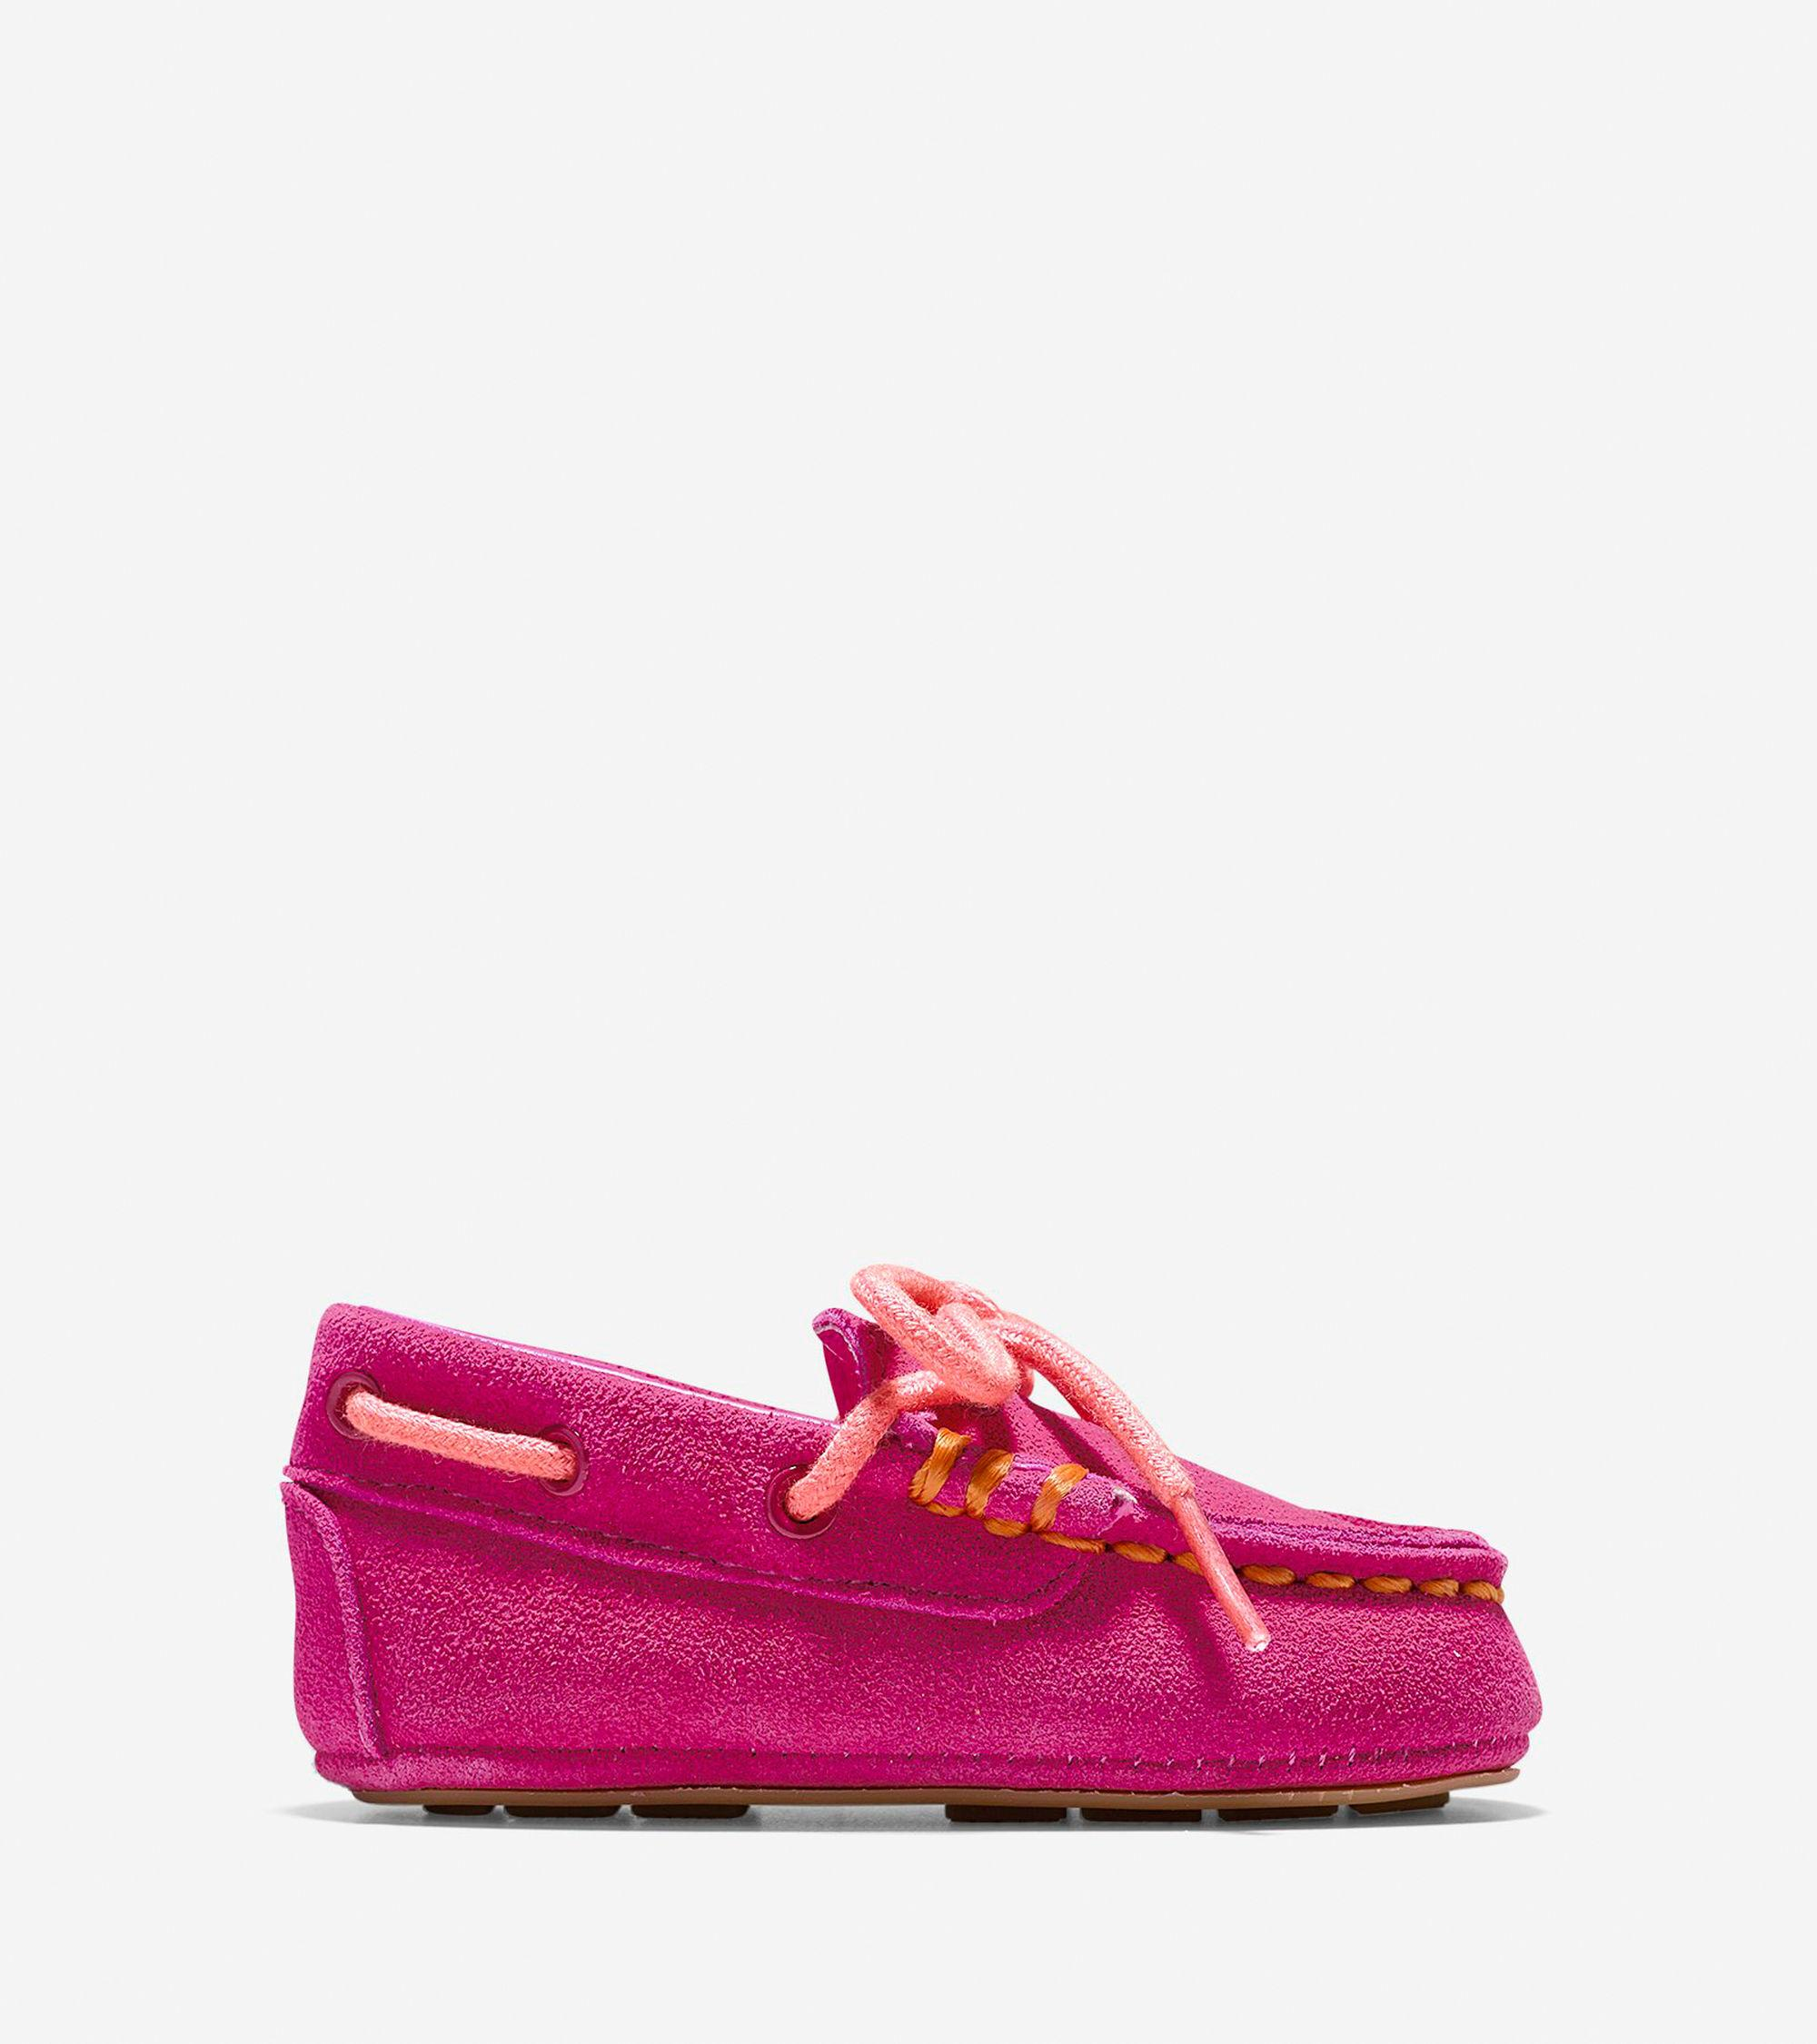 Cole haan Baby Grant Driver in Pink